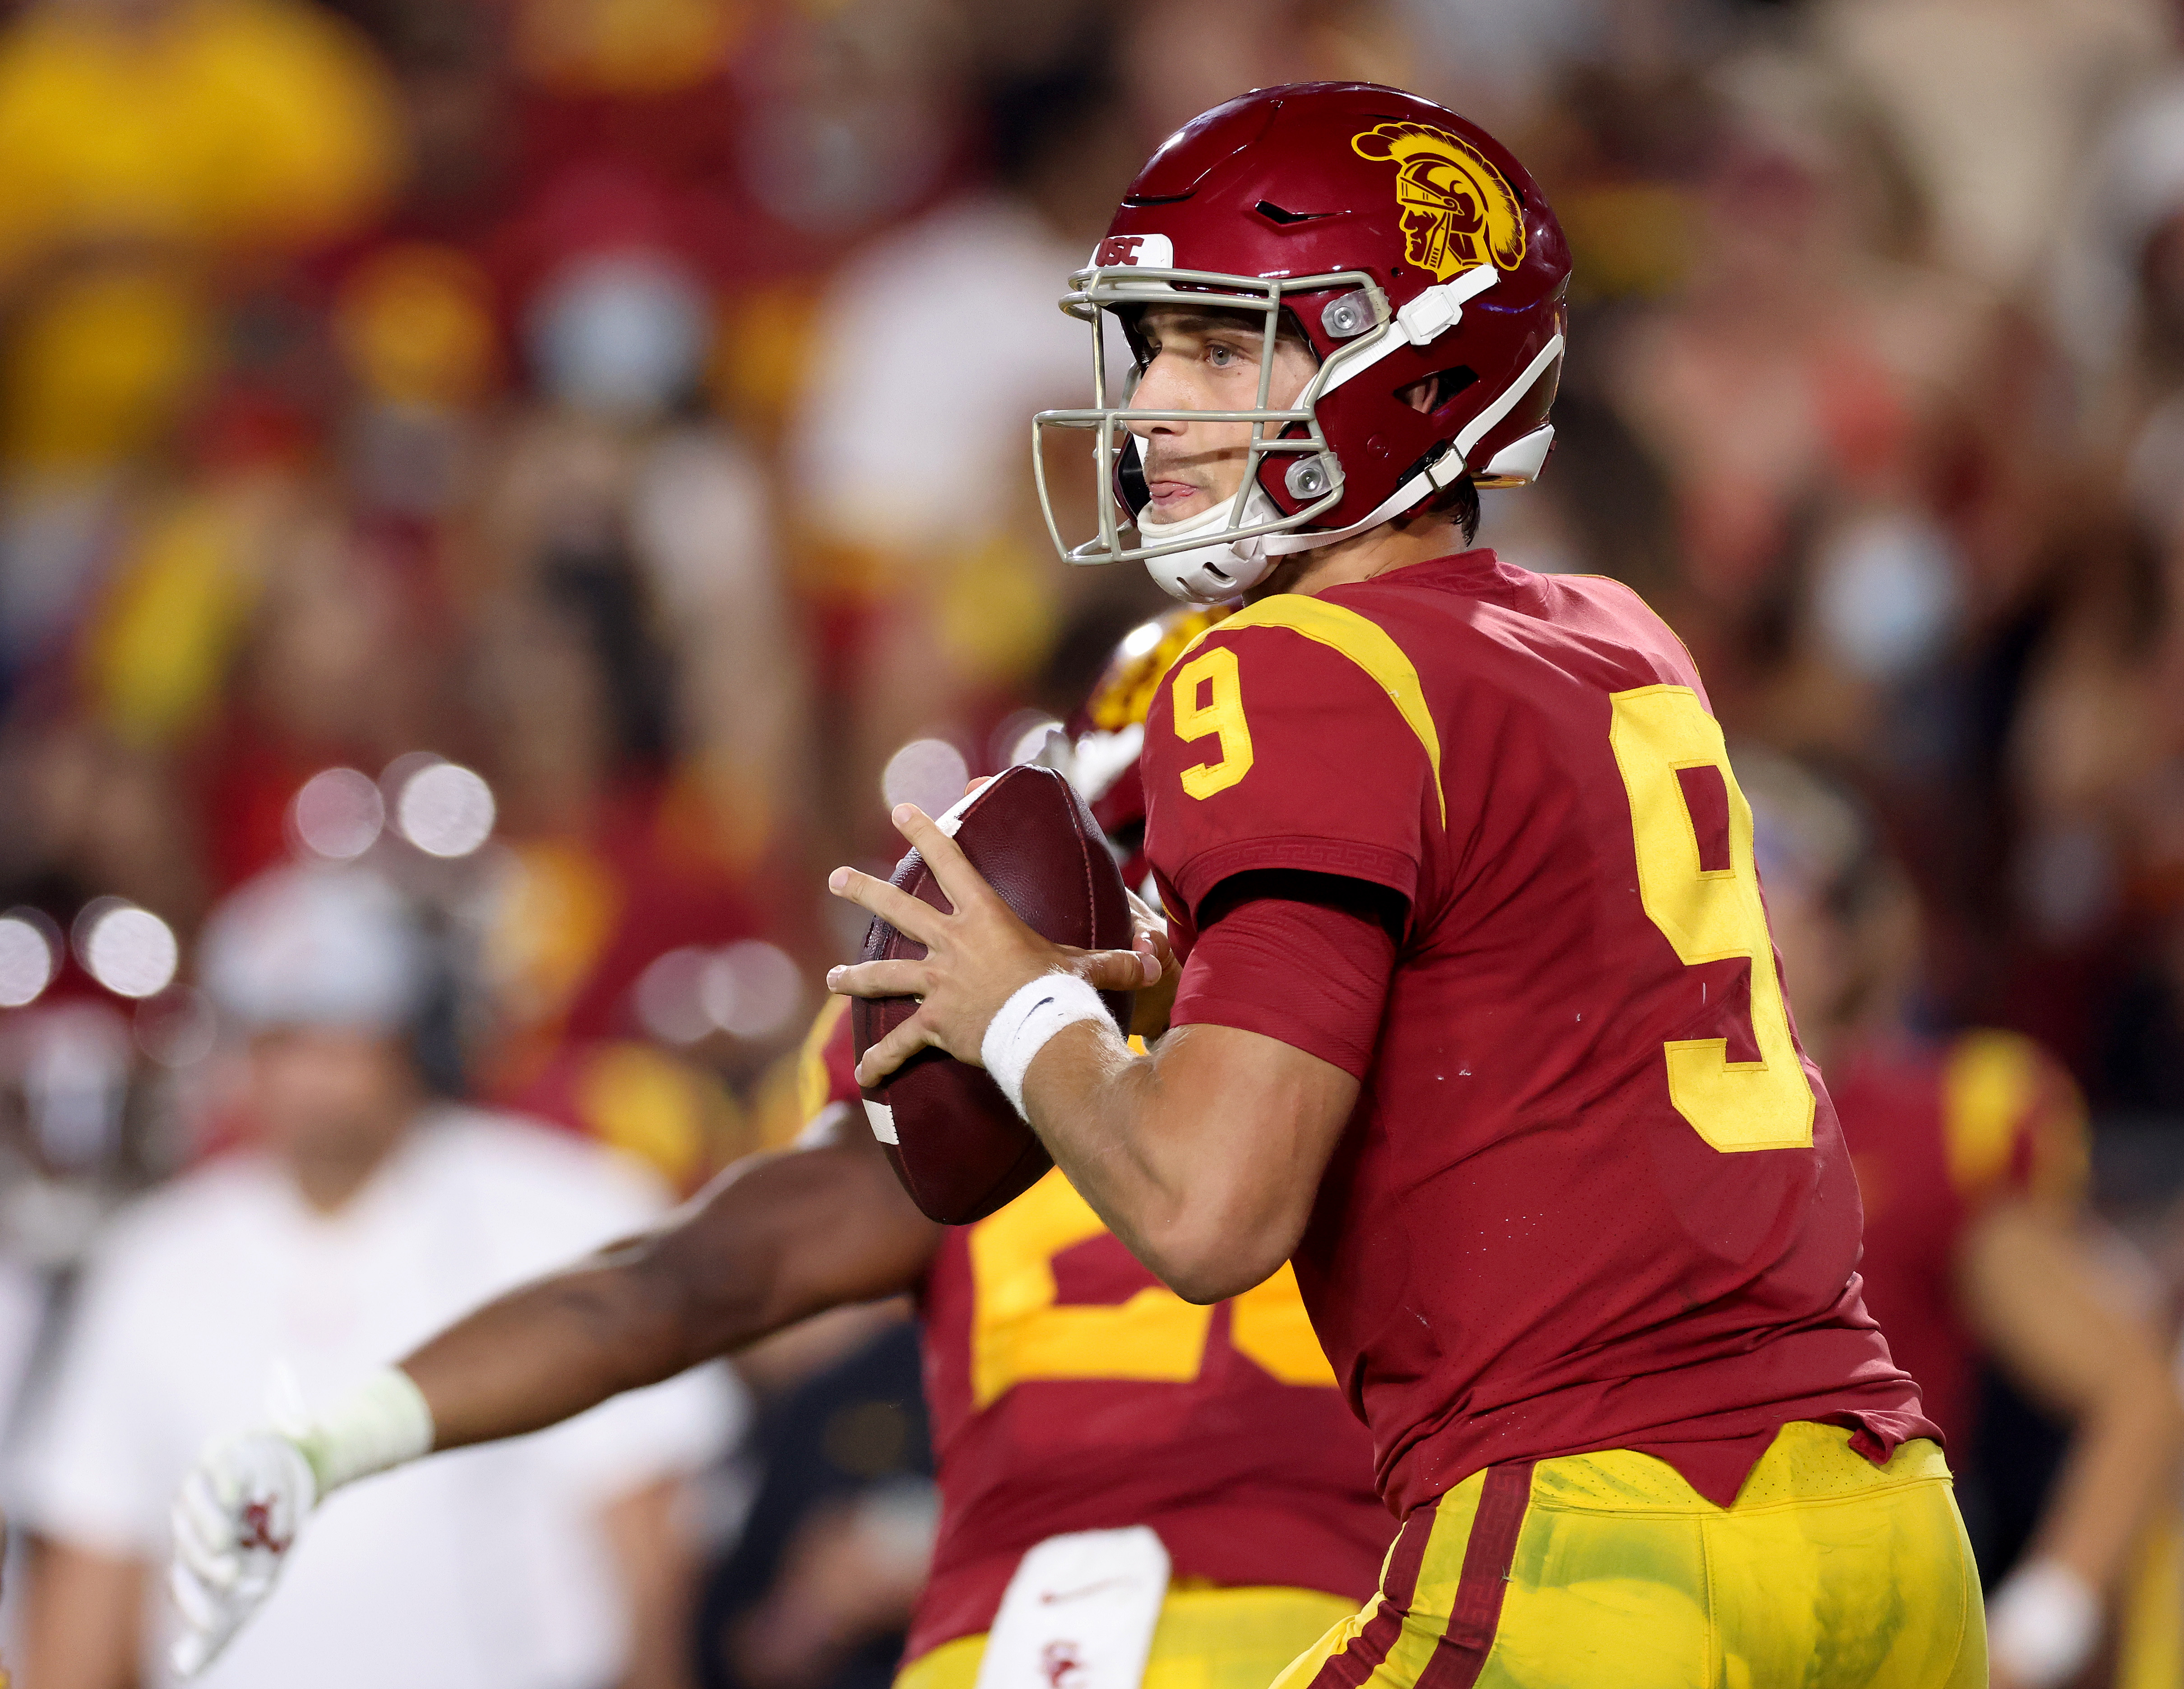 Kedon Slovis of the USC Trojans prepares to pass during a 42-28 loss to the Stanford Cardinal at Los Angeles Memorial Coliseum on September 11, 2021 in Los Angeles, California.